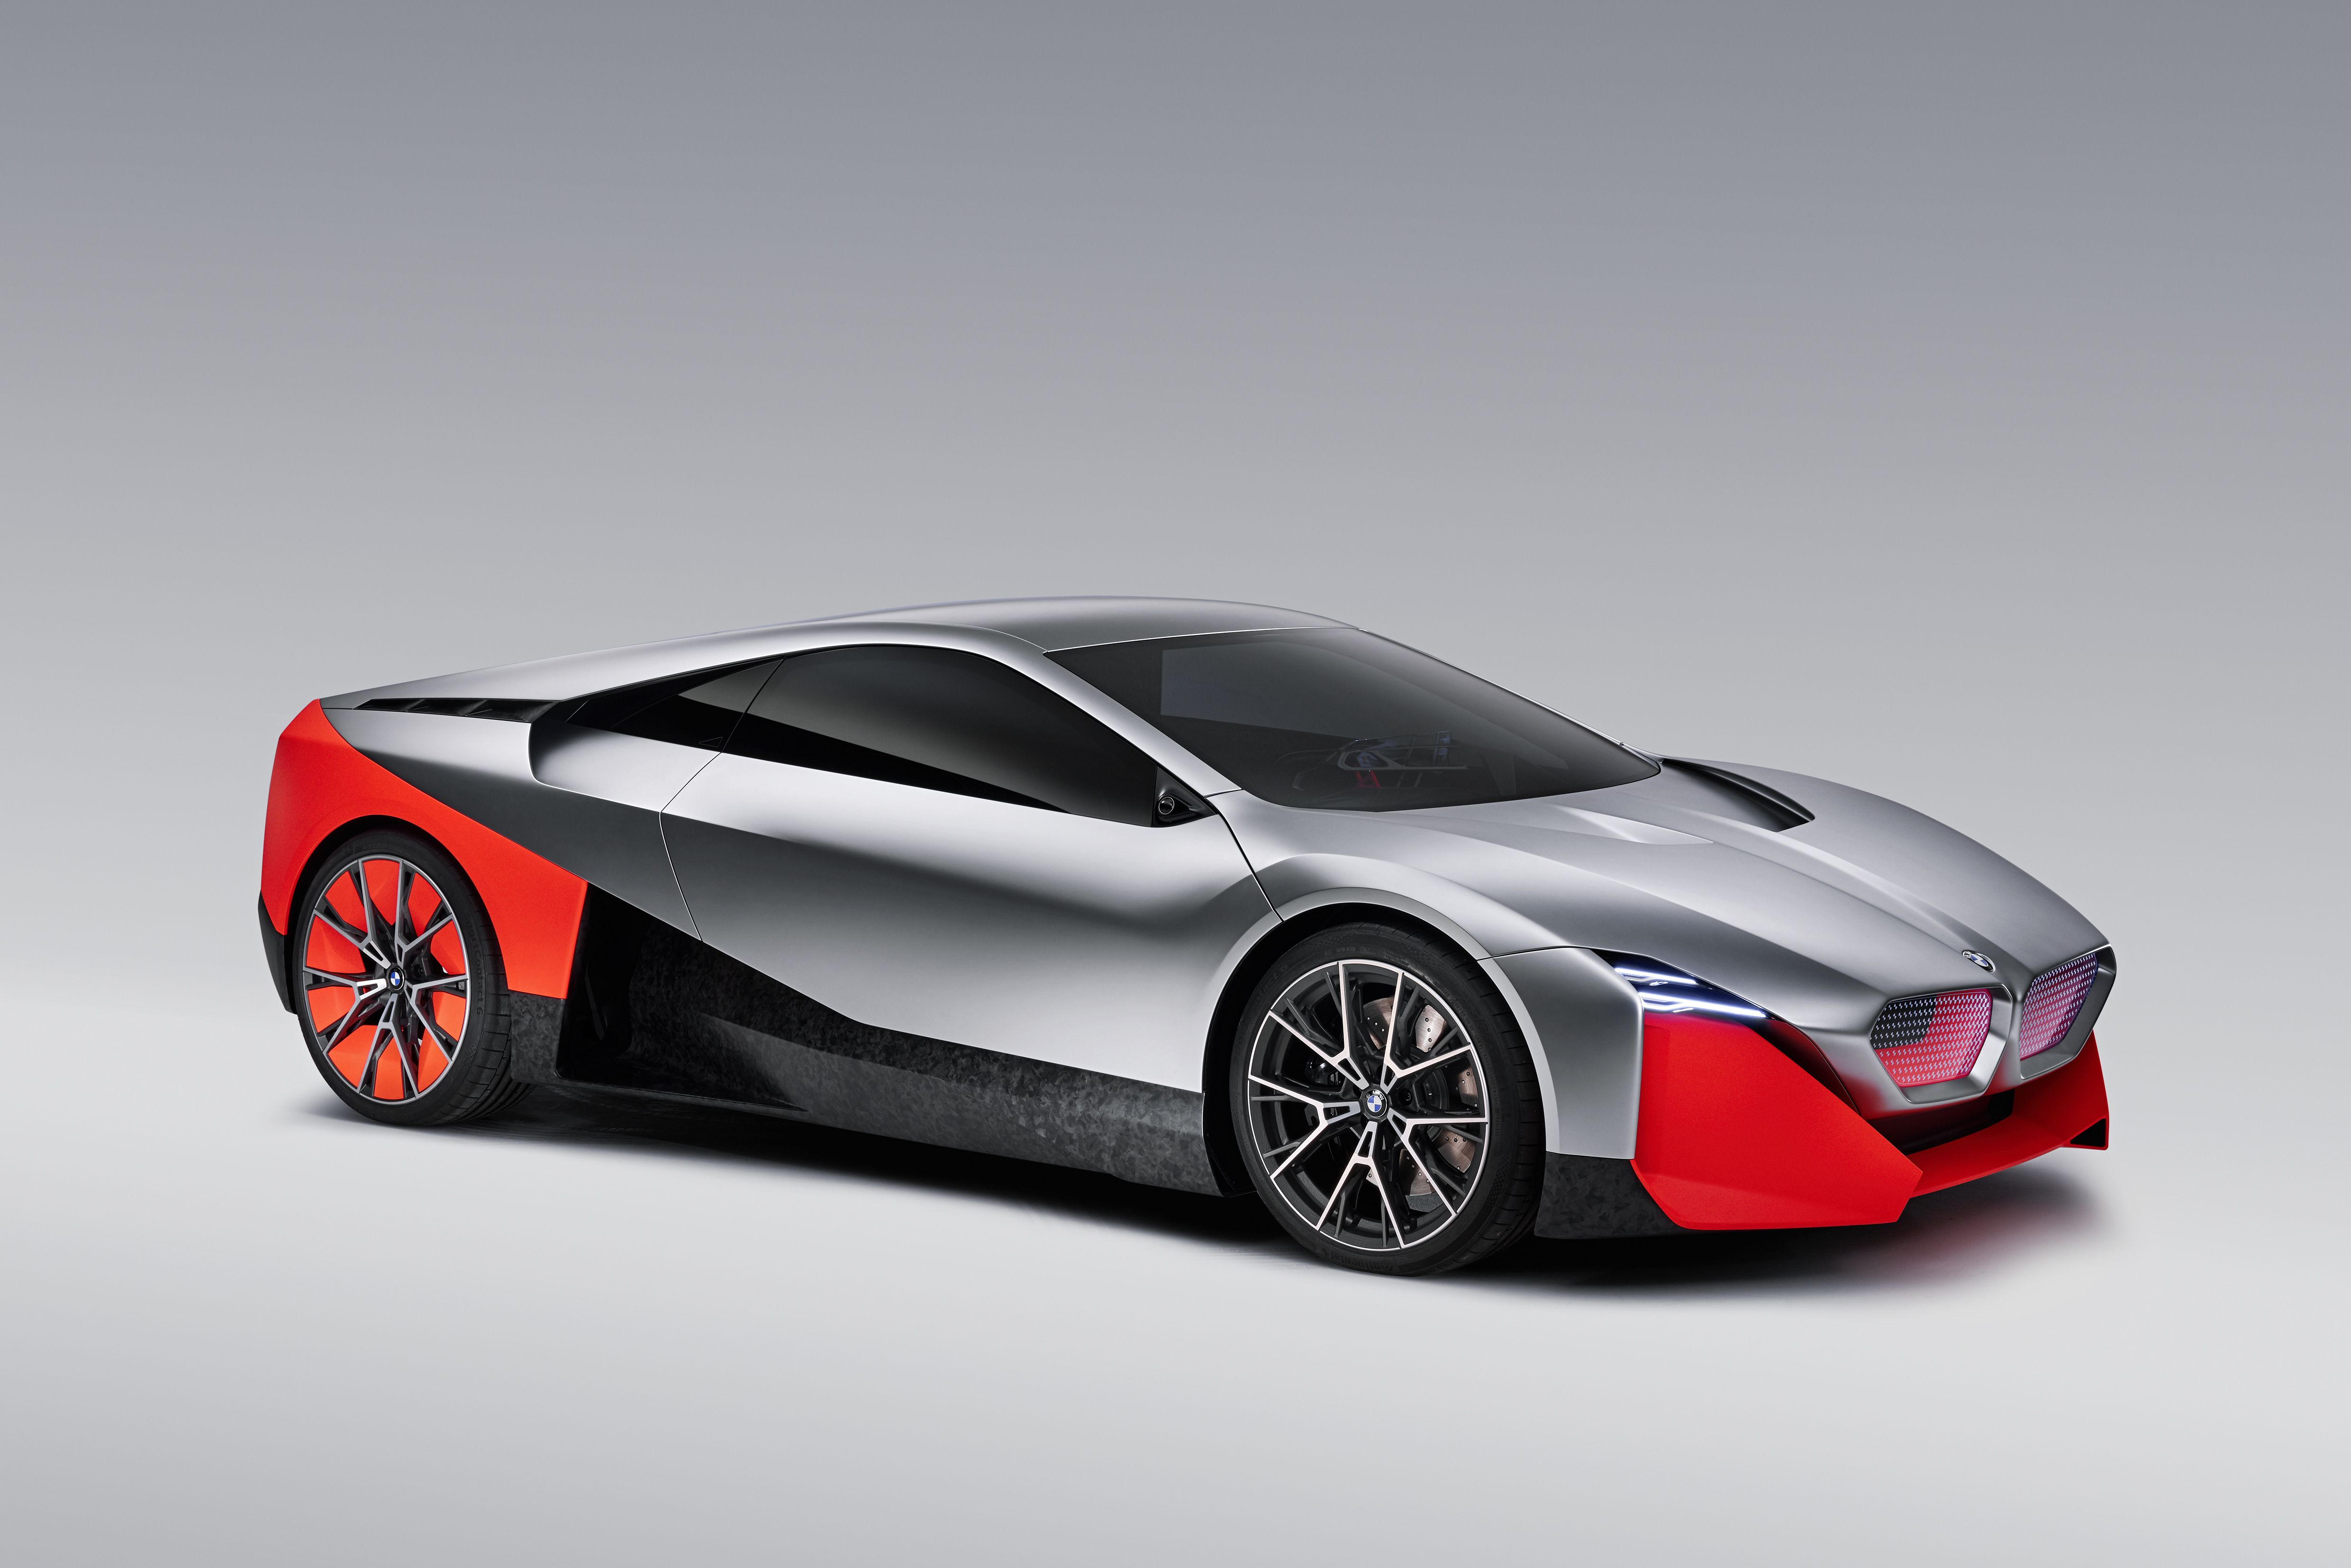 Bmw S Long Awaited Supercar Will Probably Be The I8 M In 2020 Bmw Concept Bmw Super Cars